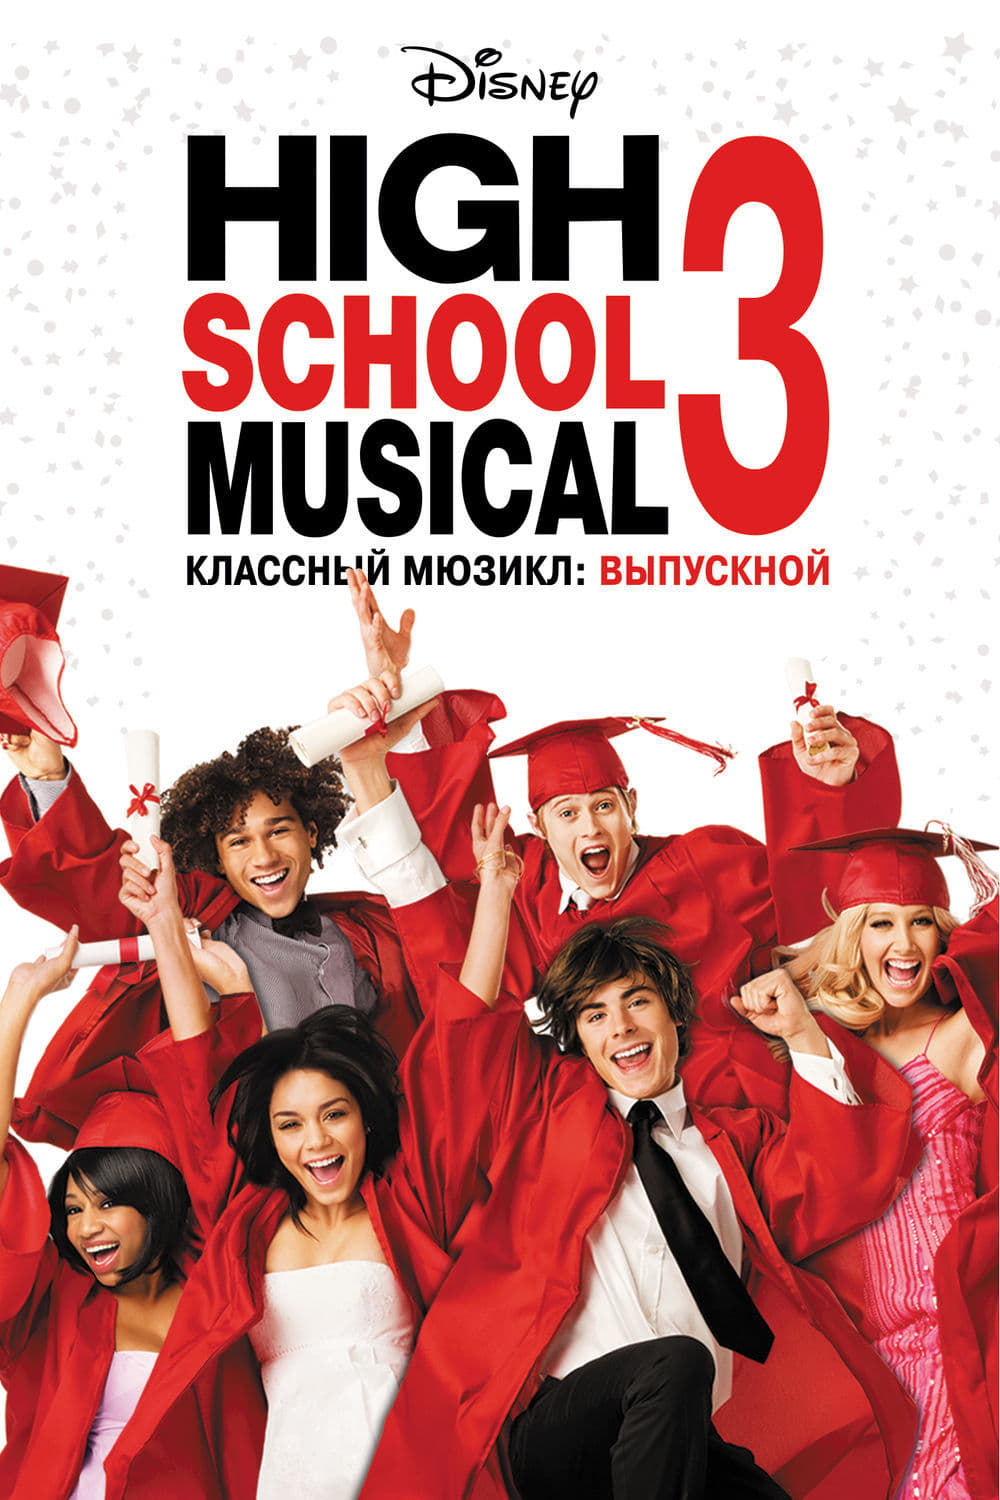 success of high school musical in High school musical: kenny ortega reflects on the (unexpected) success of the series.